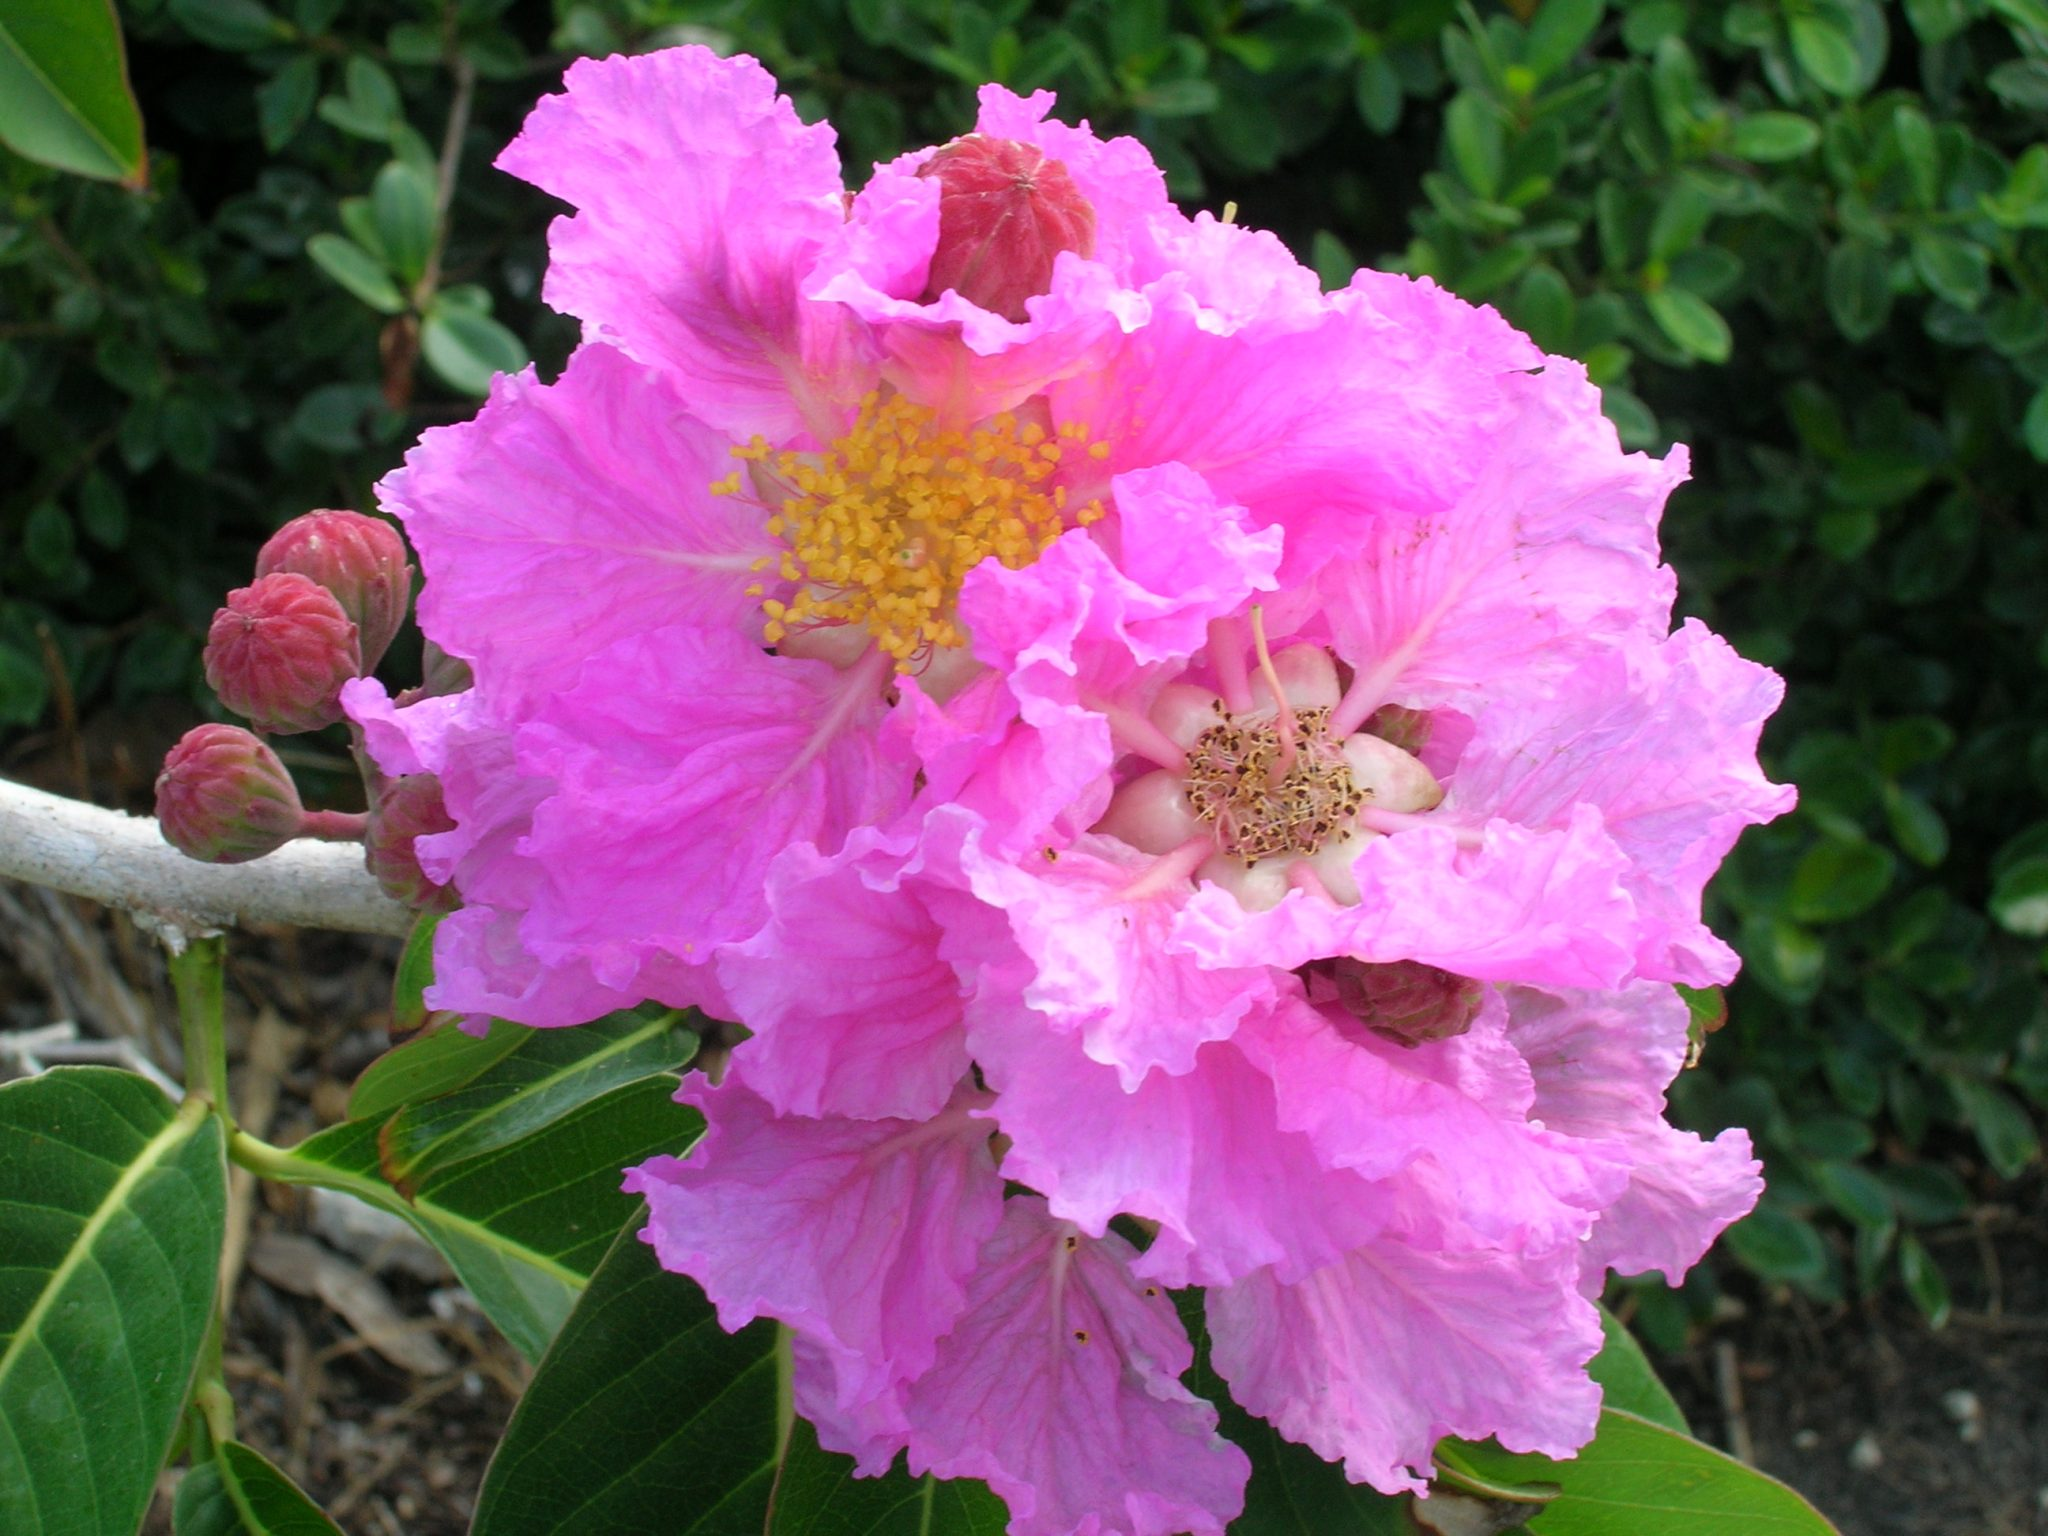 Queen crape myrtle flower little blue book poker pdf